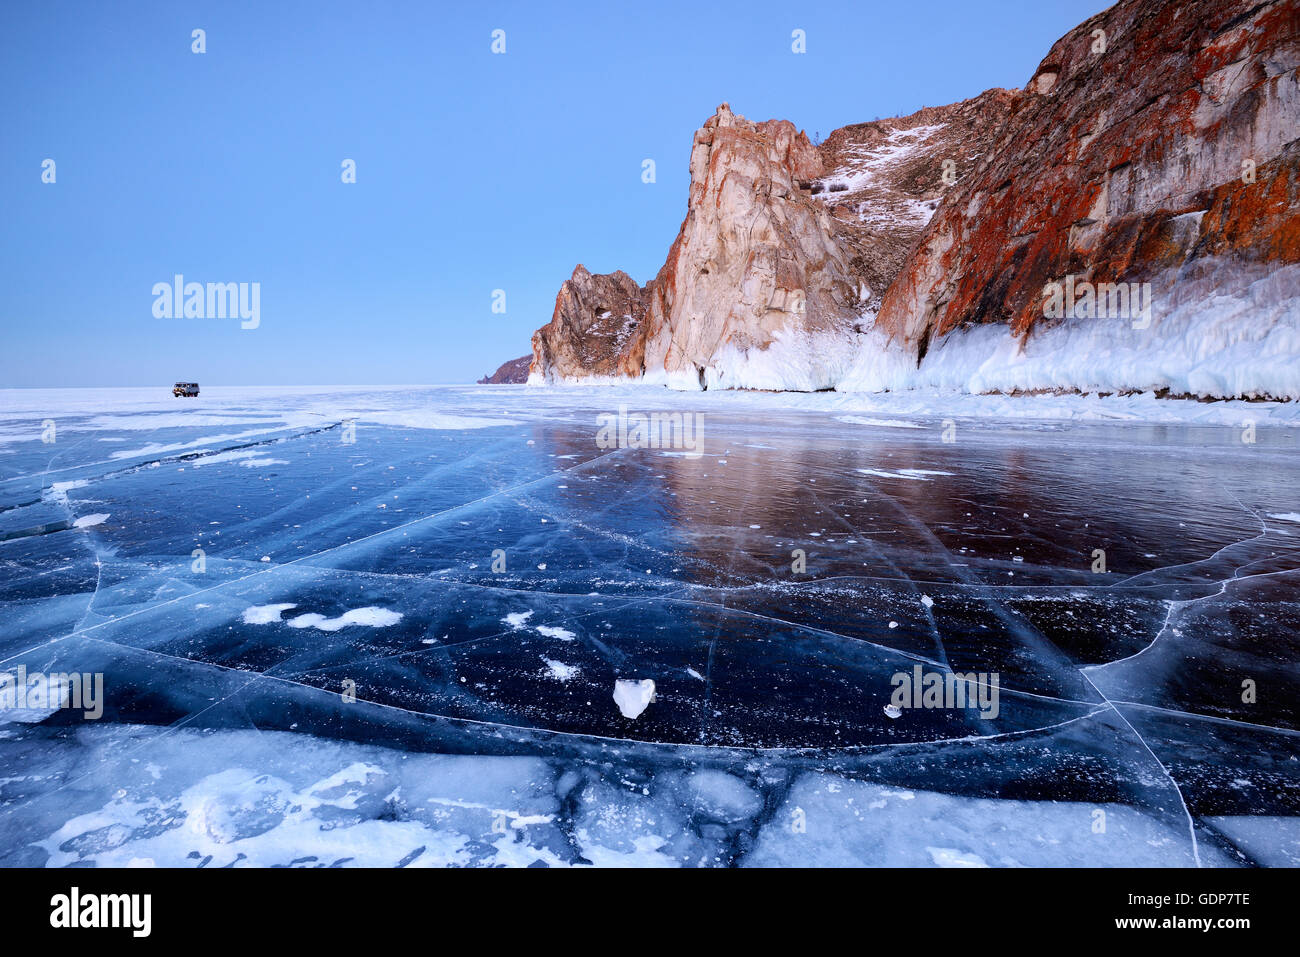 Cape Sagan Khushun and Three Brothers Rock, Baikal Lake, Olkhon Island, Siberia, Russia - Stock Image